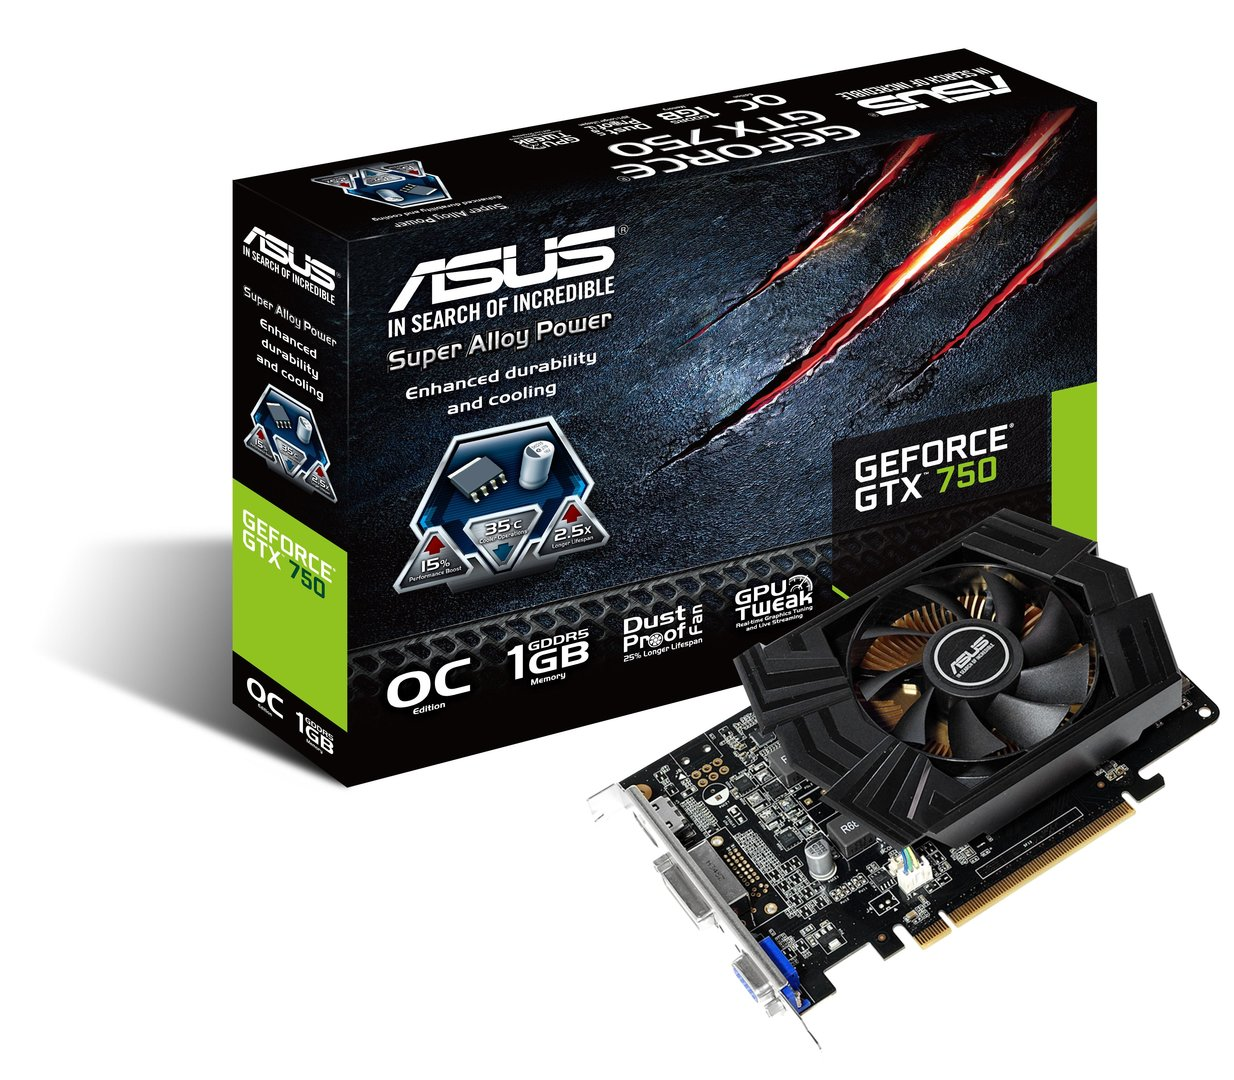 Asus GeForce GTX 750 OC